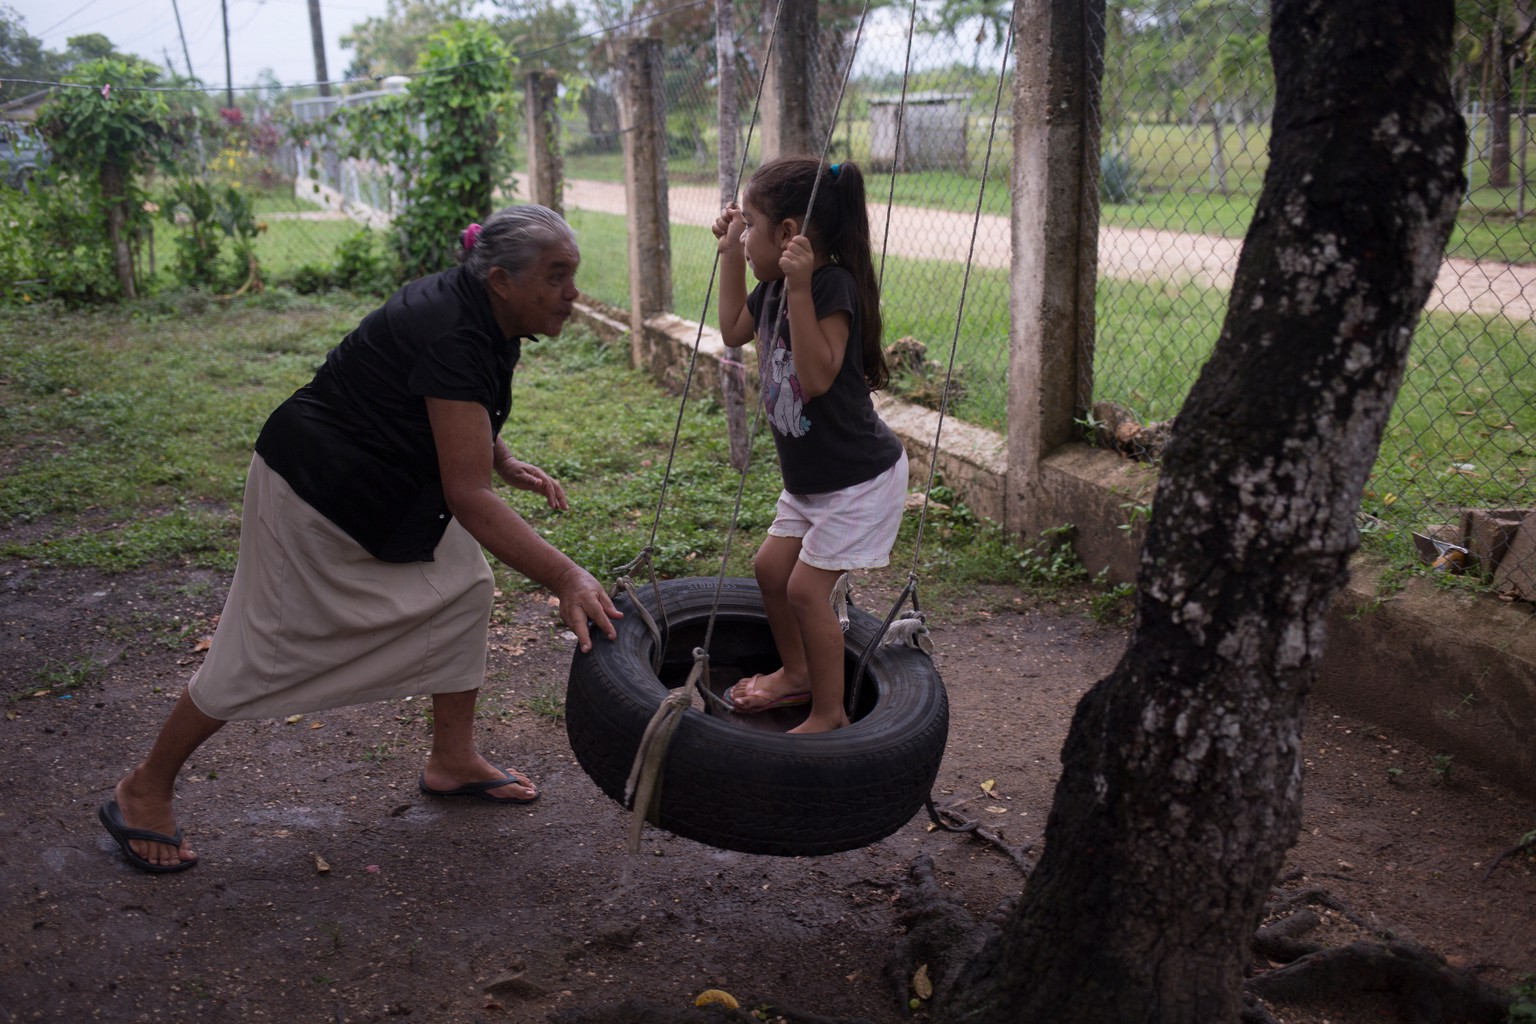 early childhood interventions provide a fair start in life for attentive and nurturing caregiving that includes play builds the skills a child needs to learn conzuelo flores in the country s cayo district is raising